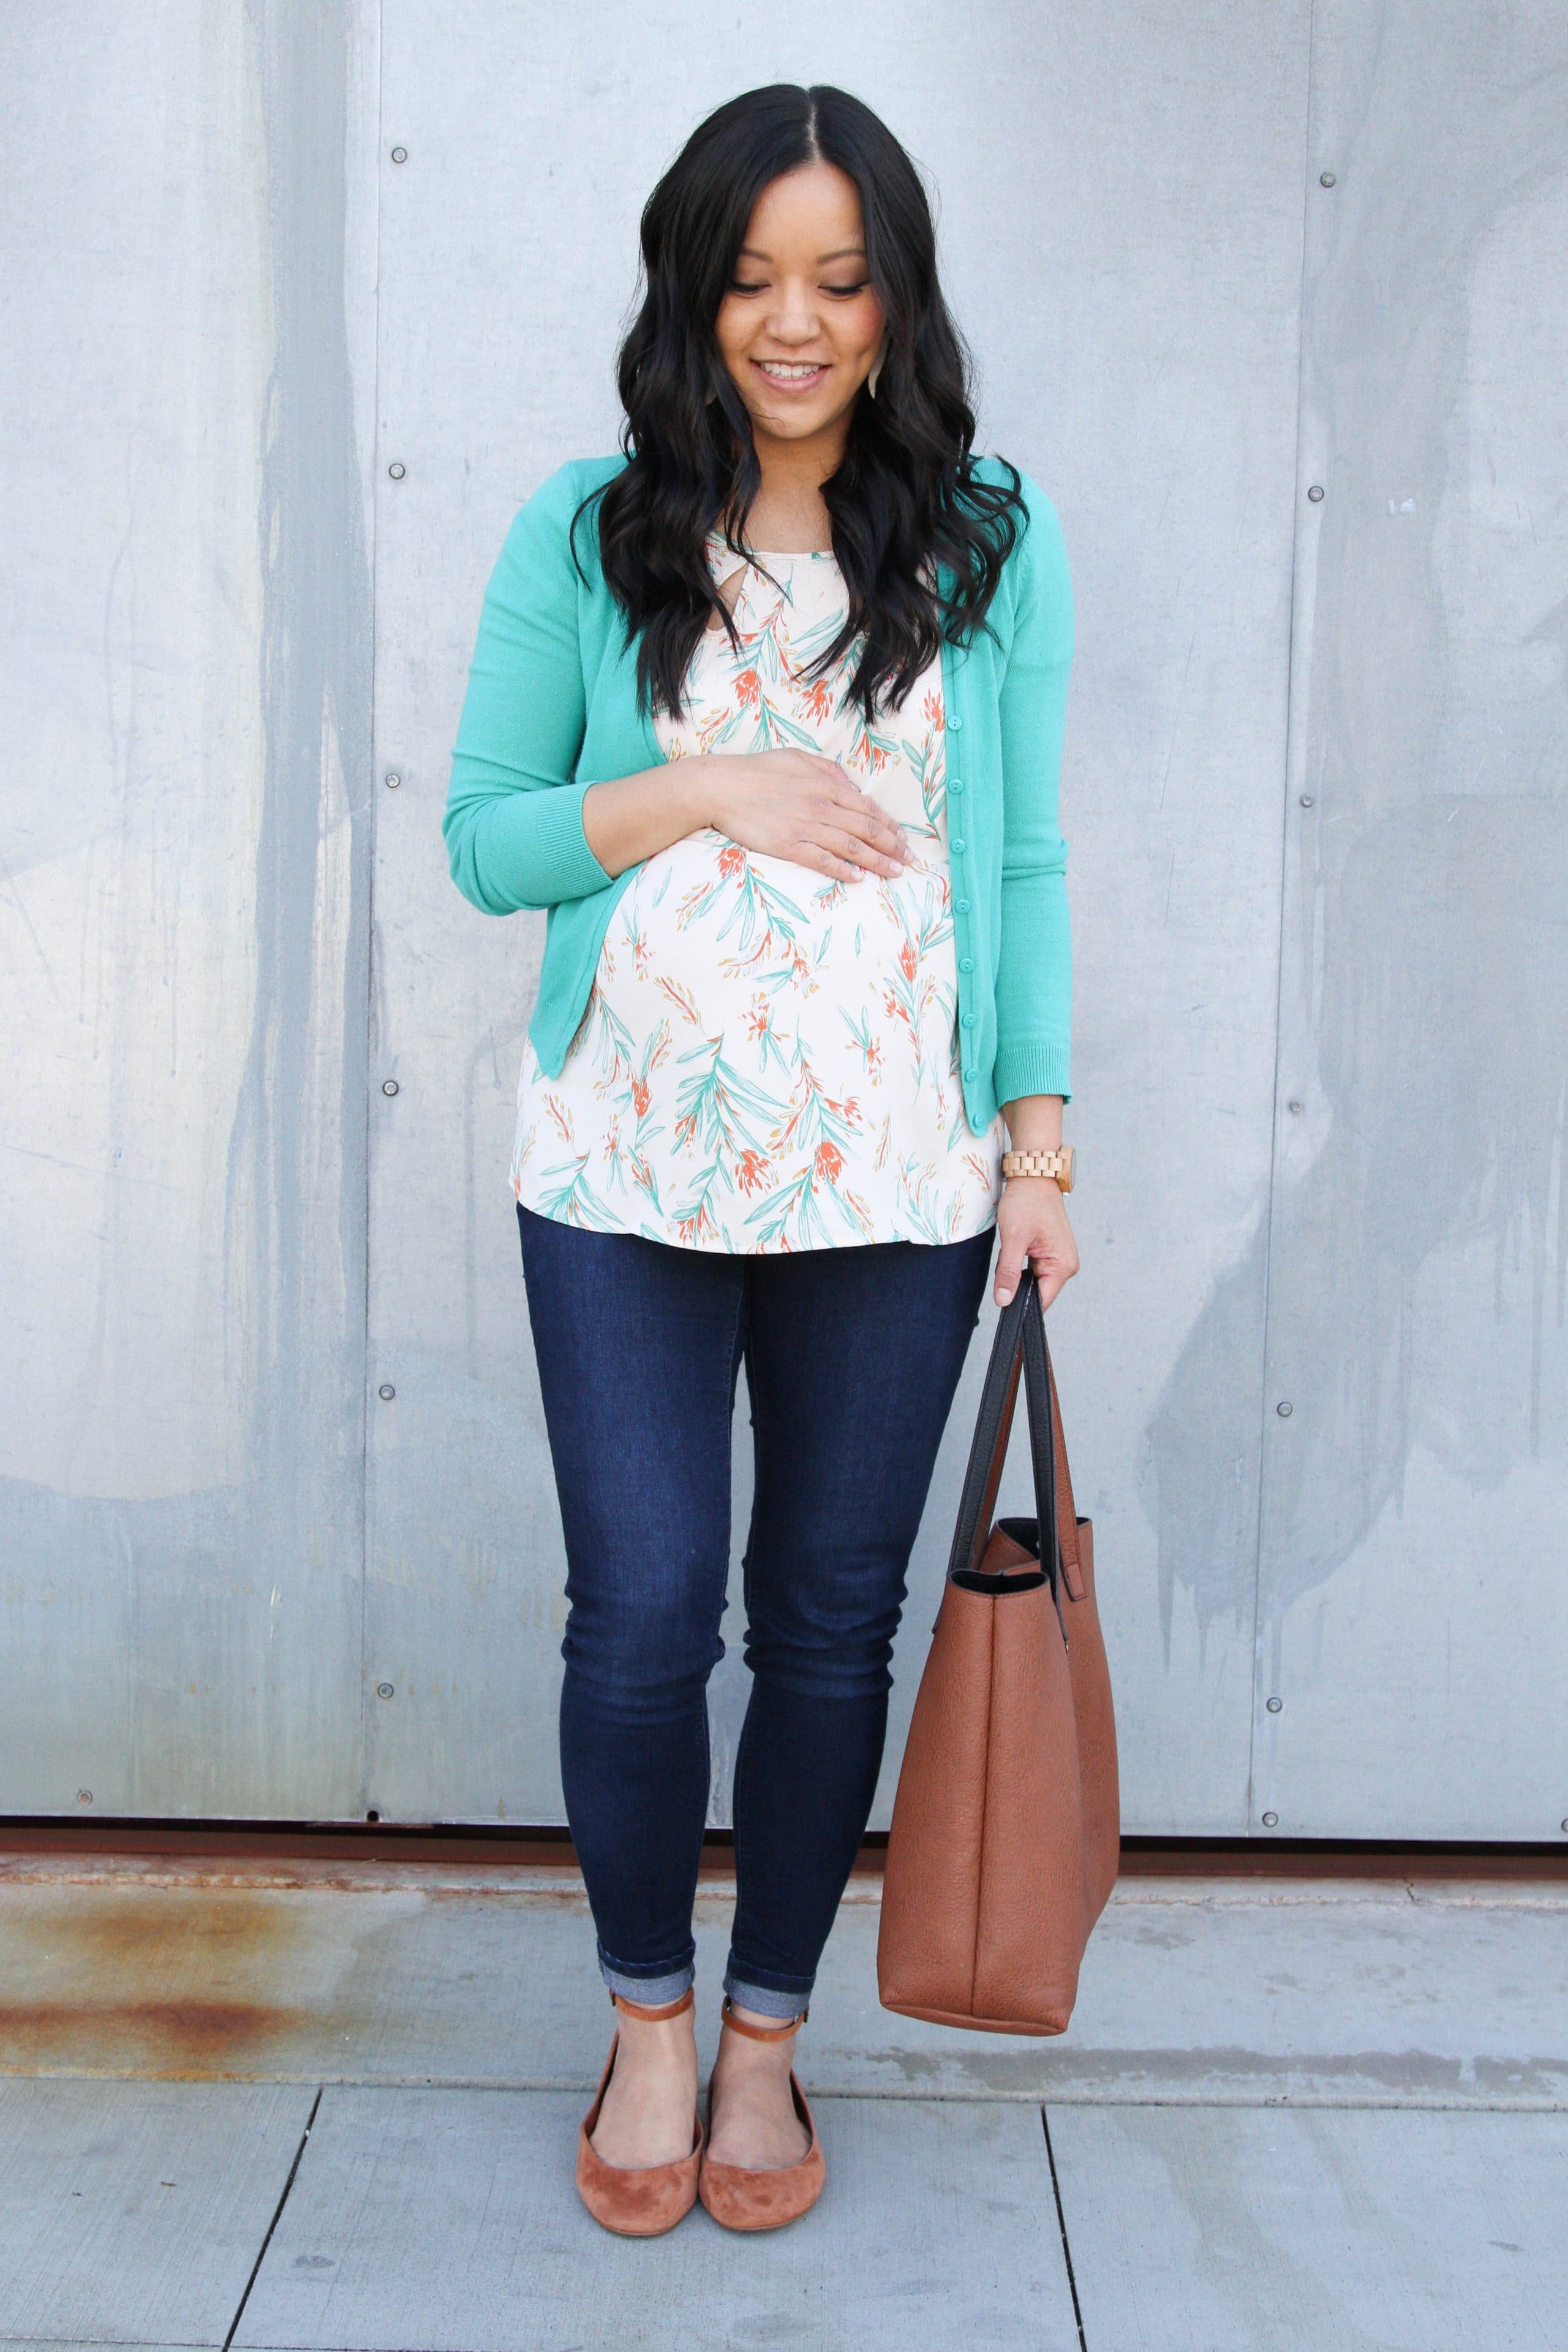 green cardigan + jeans + nude flats + floral print top